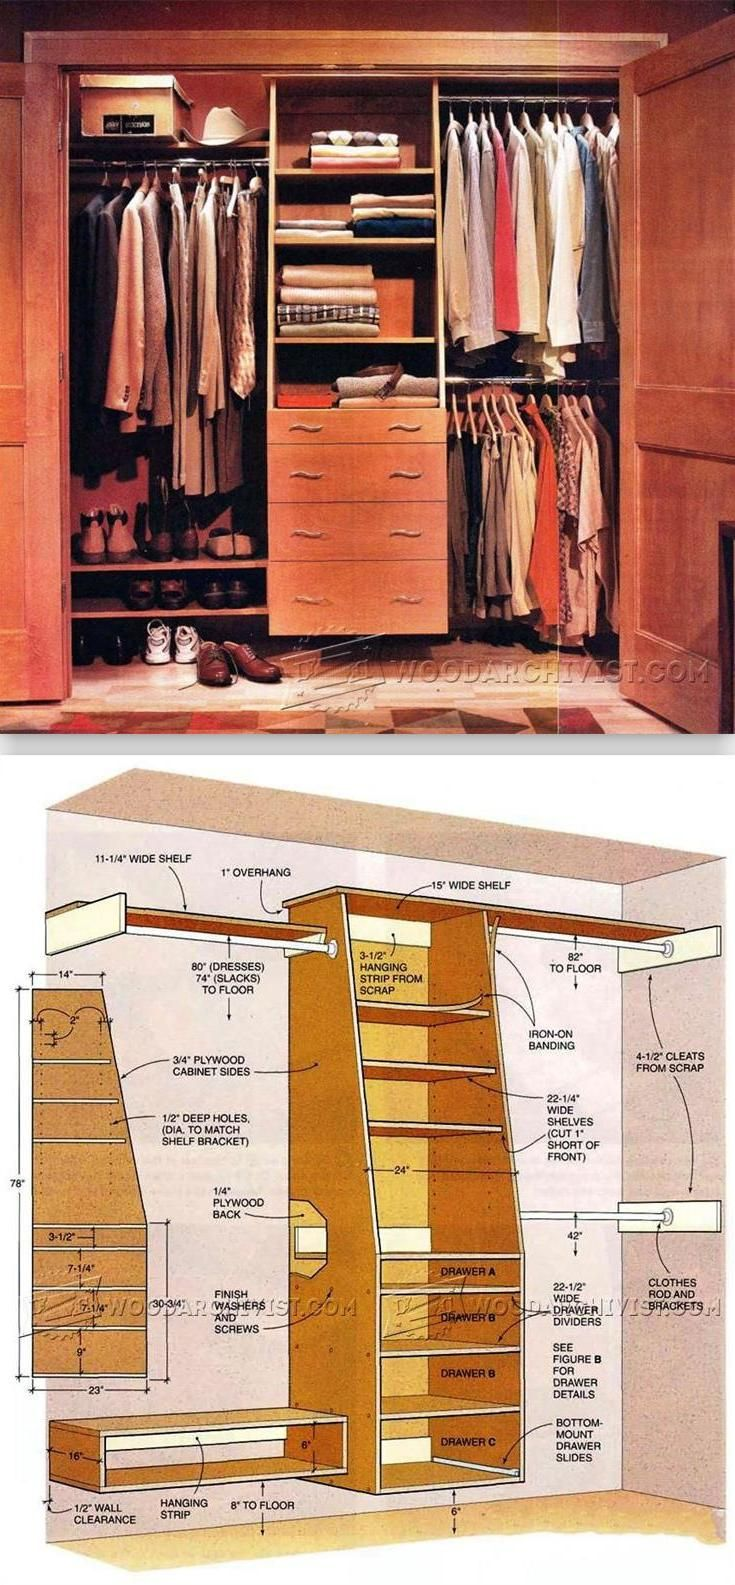 Built in closet plans furniture plans and projects woodarchivist